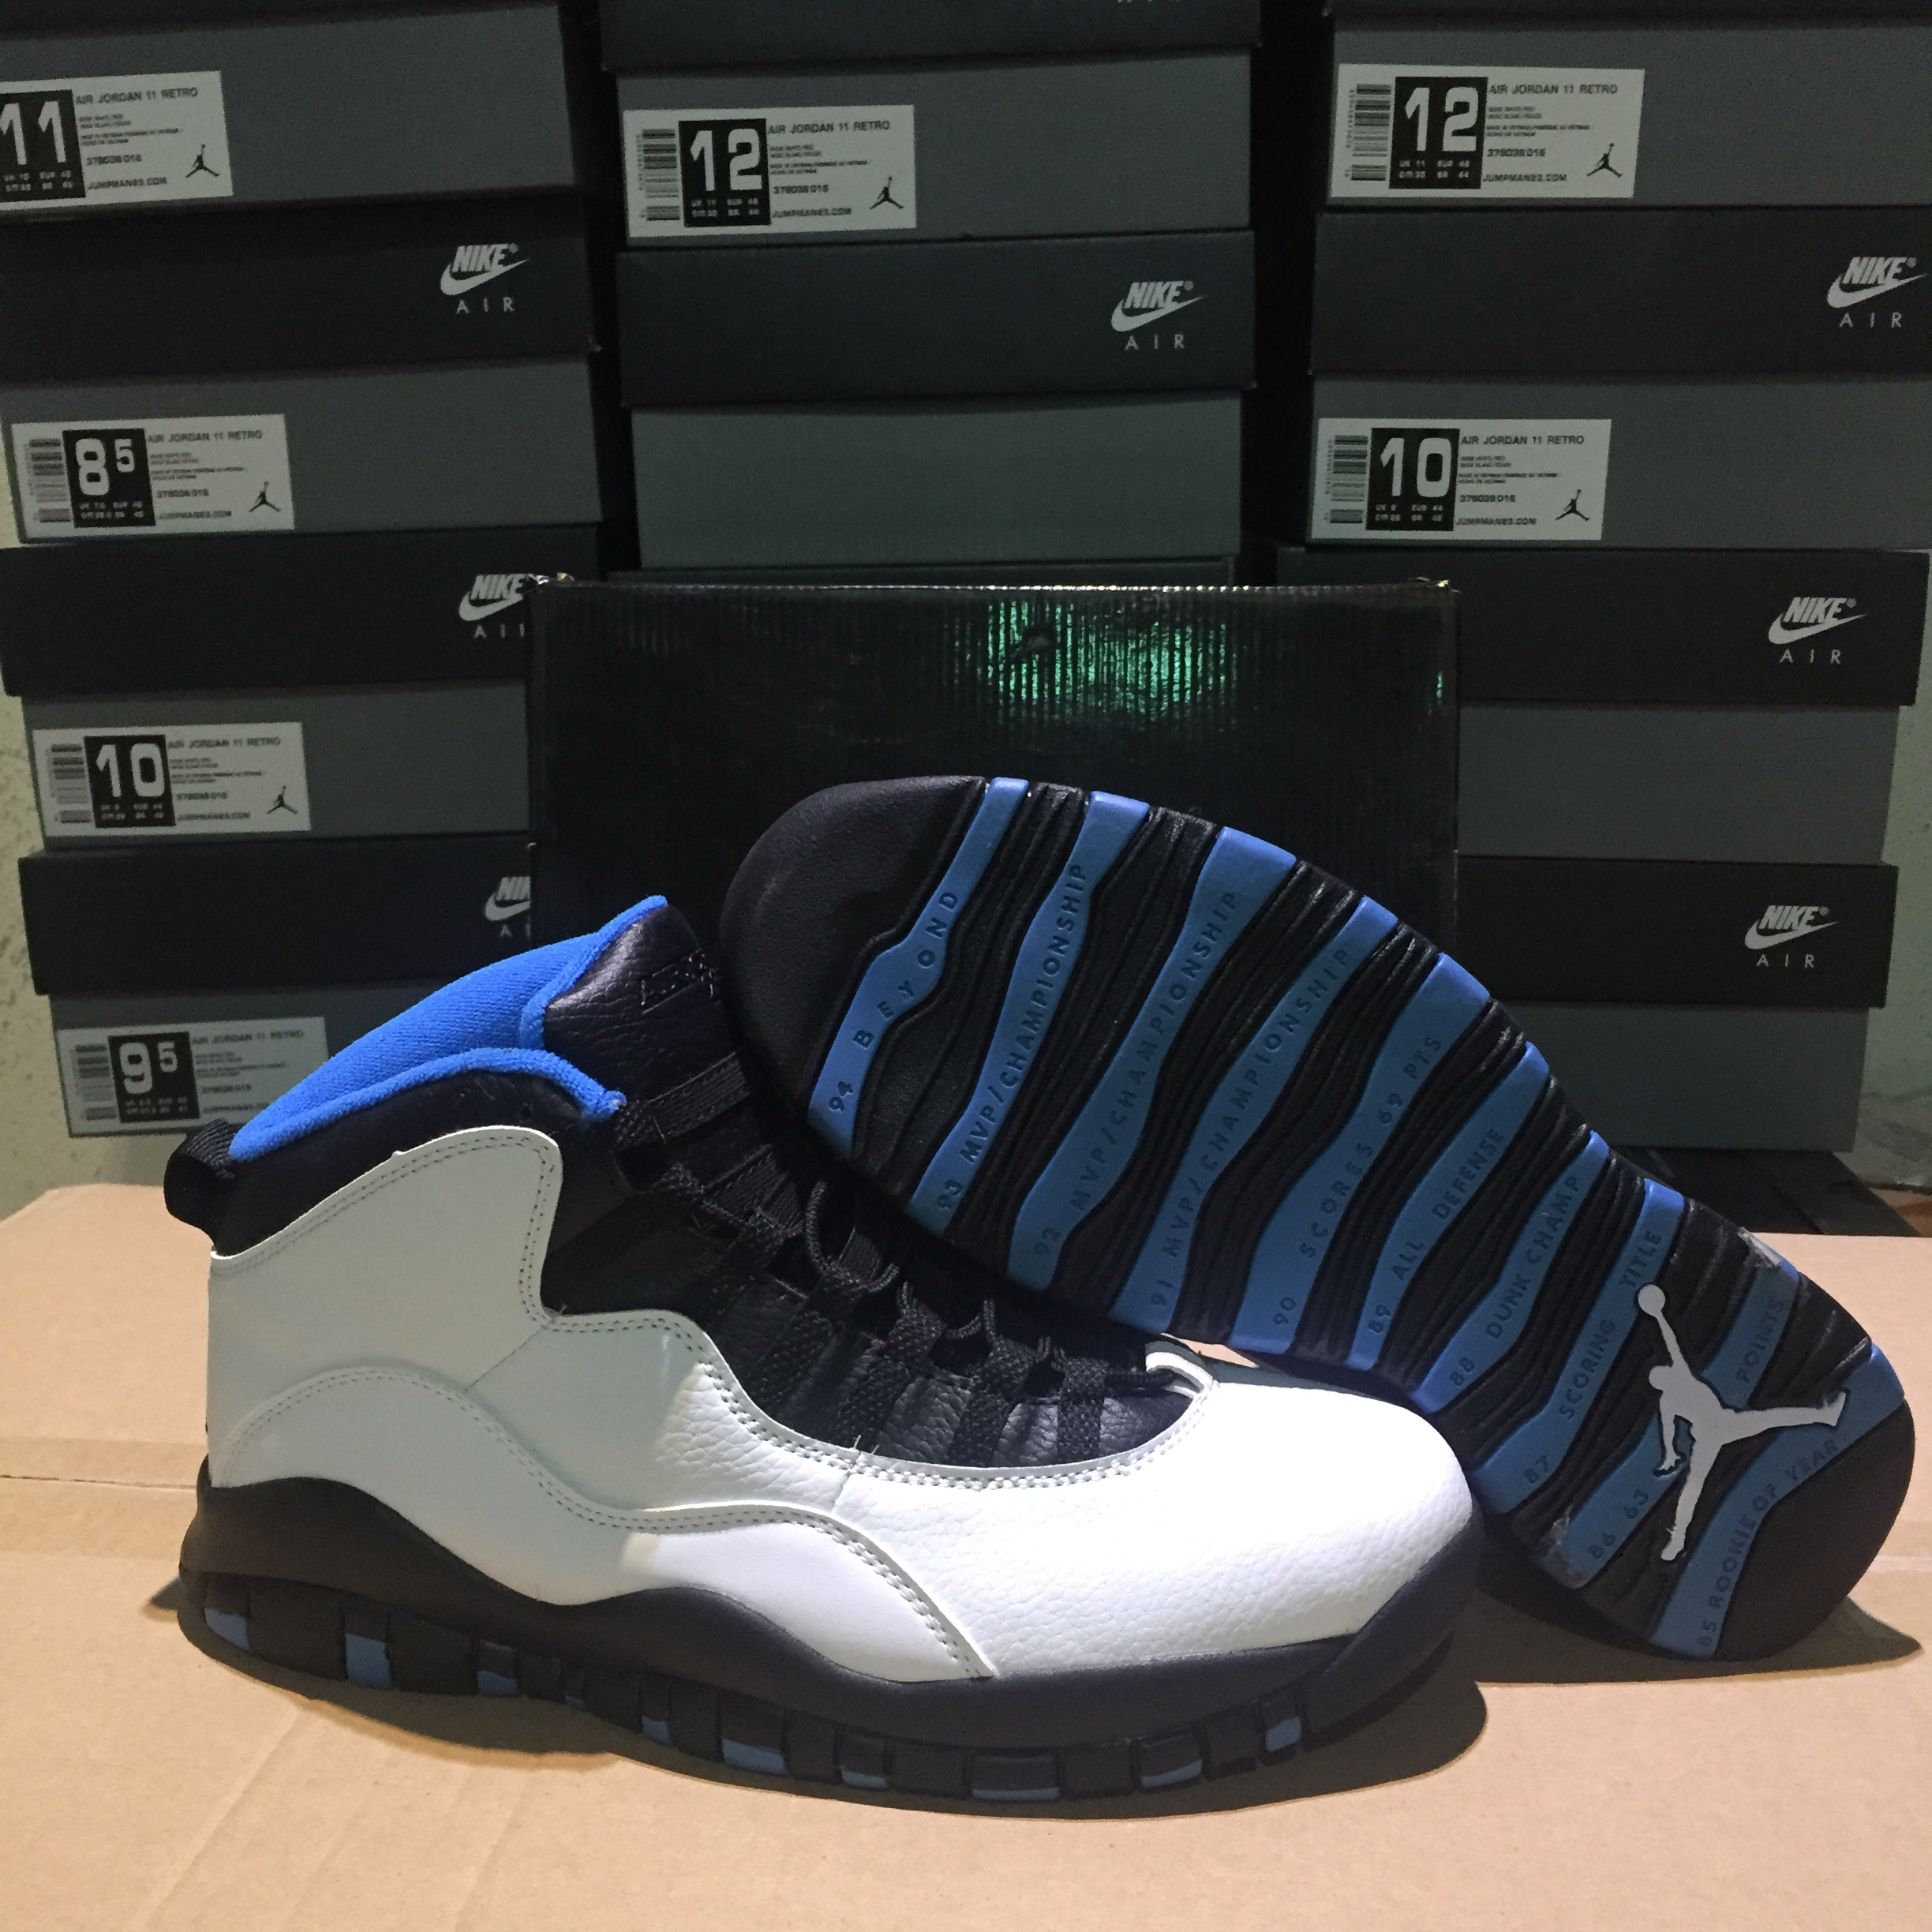 sale retailer b5690 03ea6 Air Jordan retro 10 White Black Blue 2018 Air Jordans Retro 10s Basketball  Shoes XY8 - Getfashionsstore.